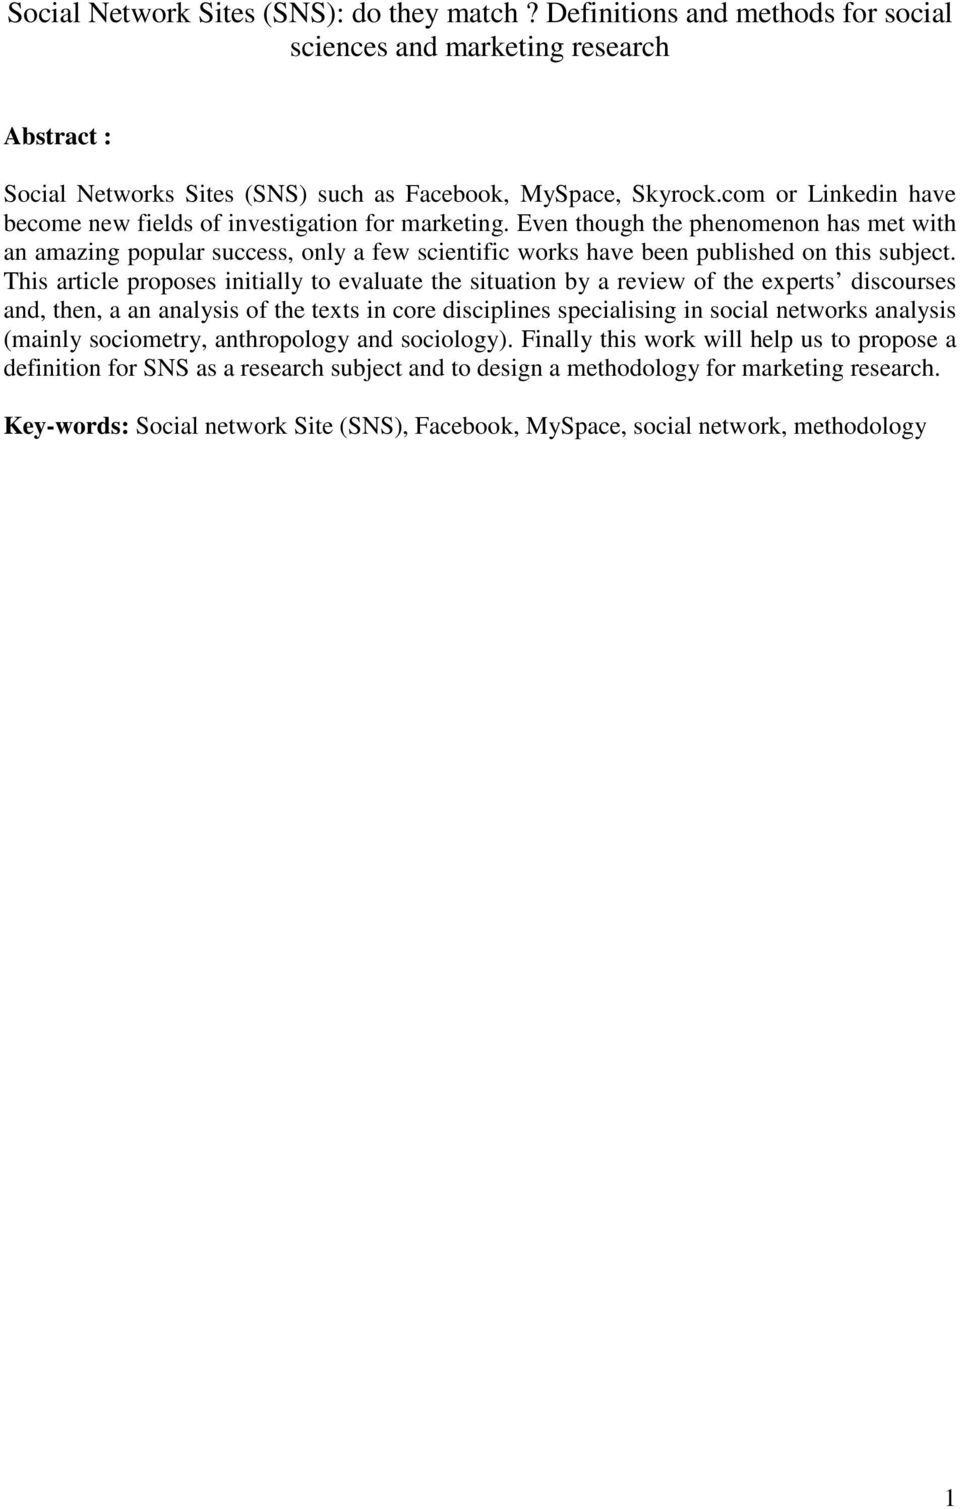 Advantages and Disadvantages of Social Networking